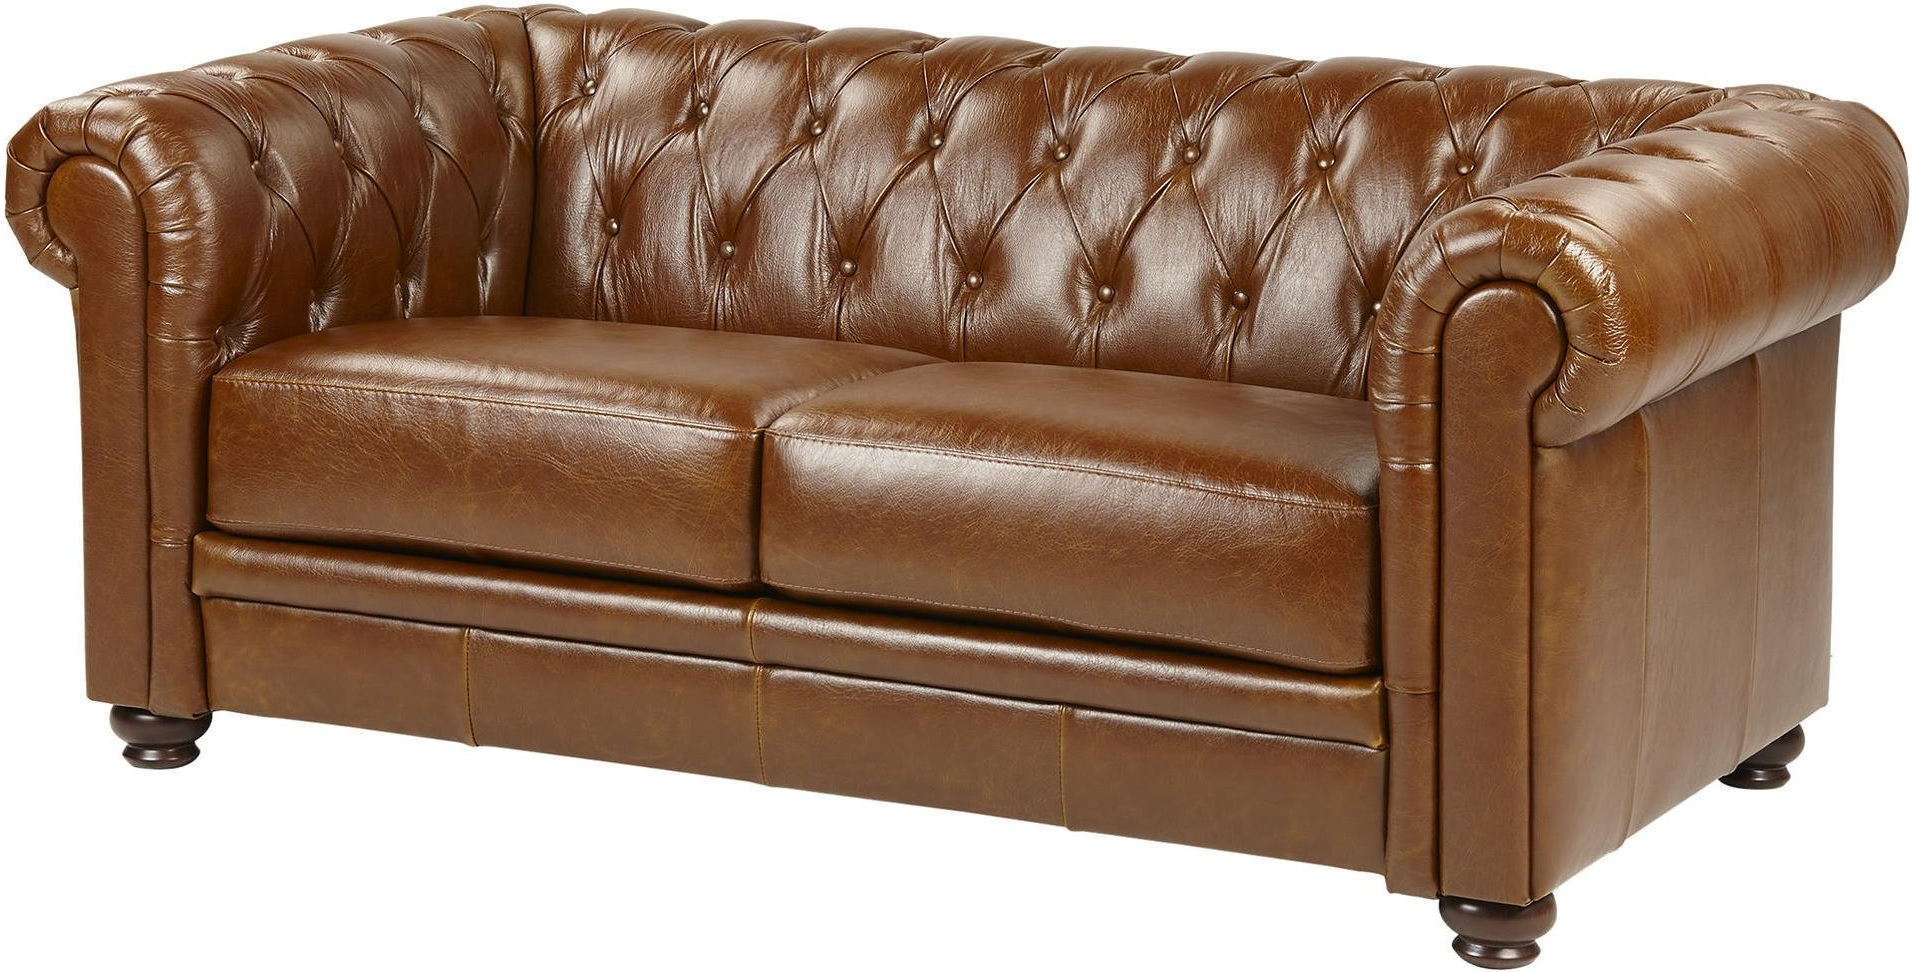 Mortimer Medium 2 5 Seater Real Leather Chesterfield Sofa Tan Brown Ebay